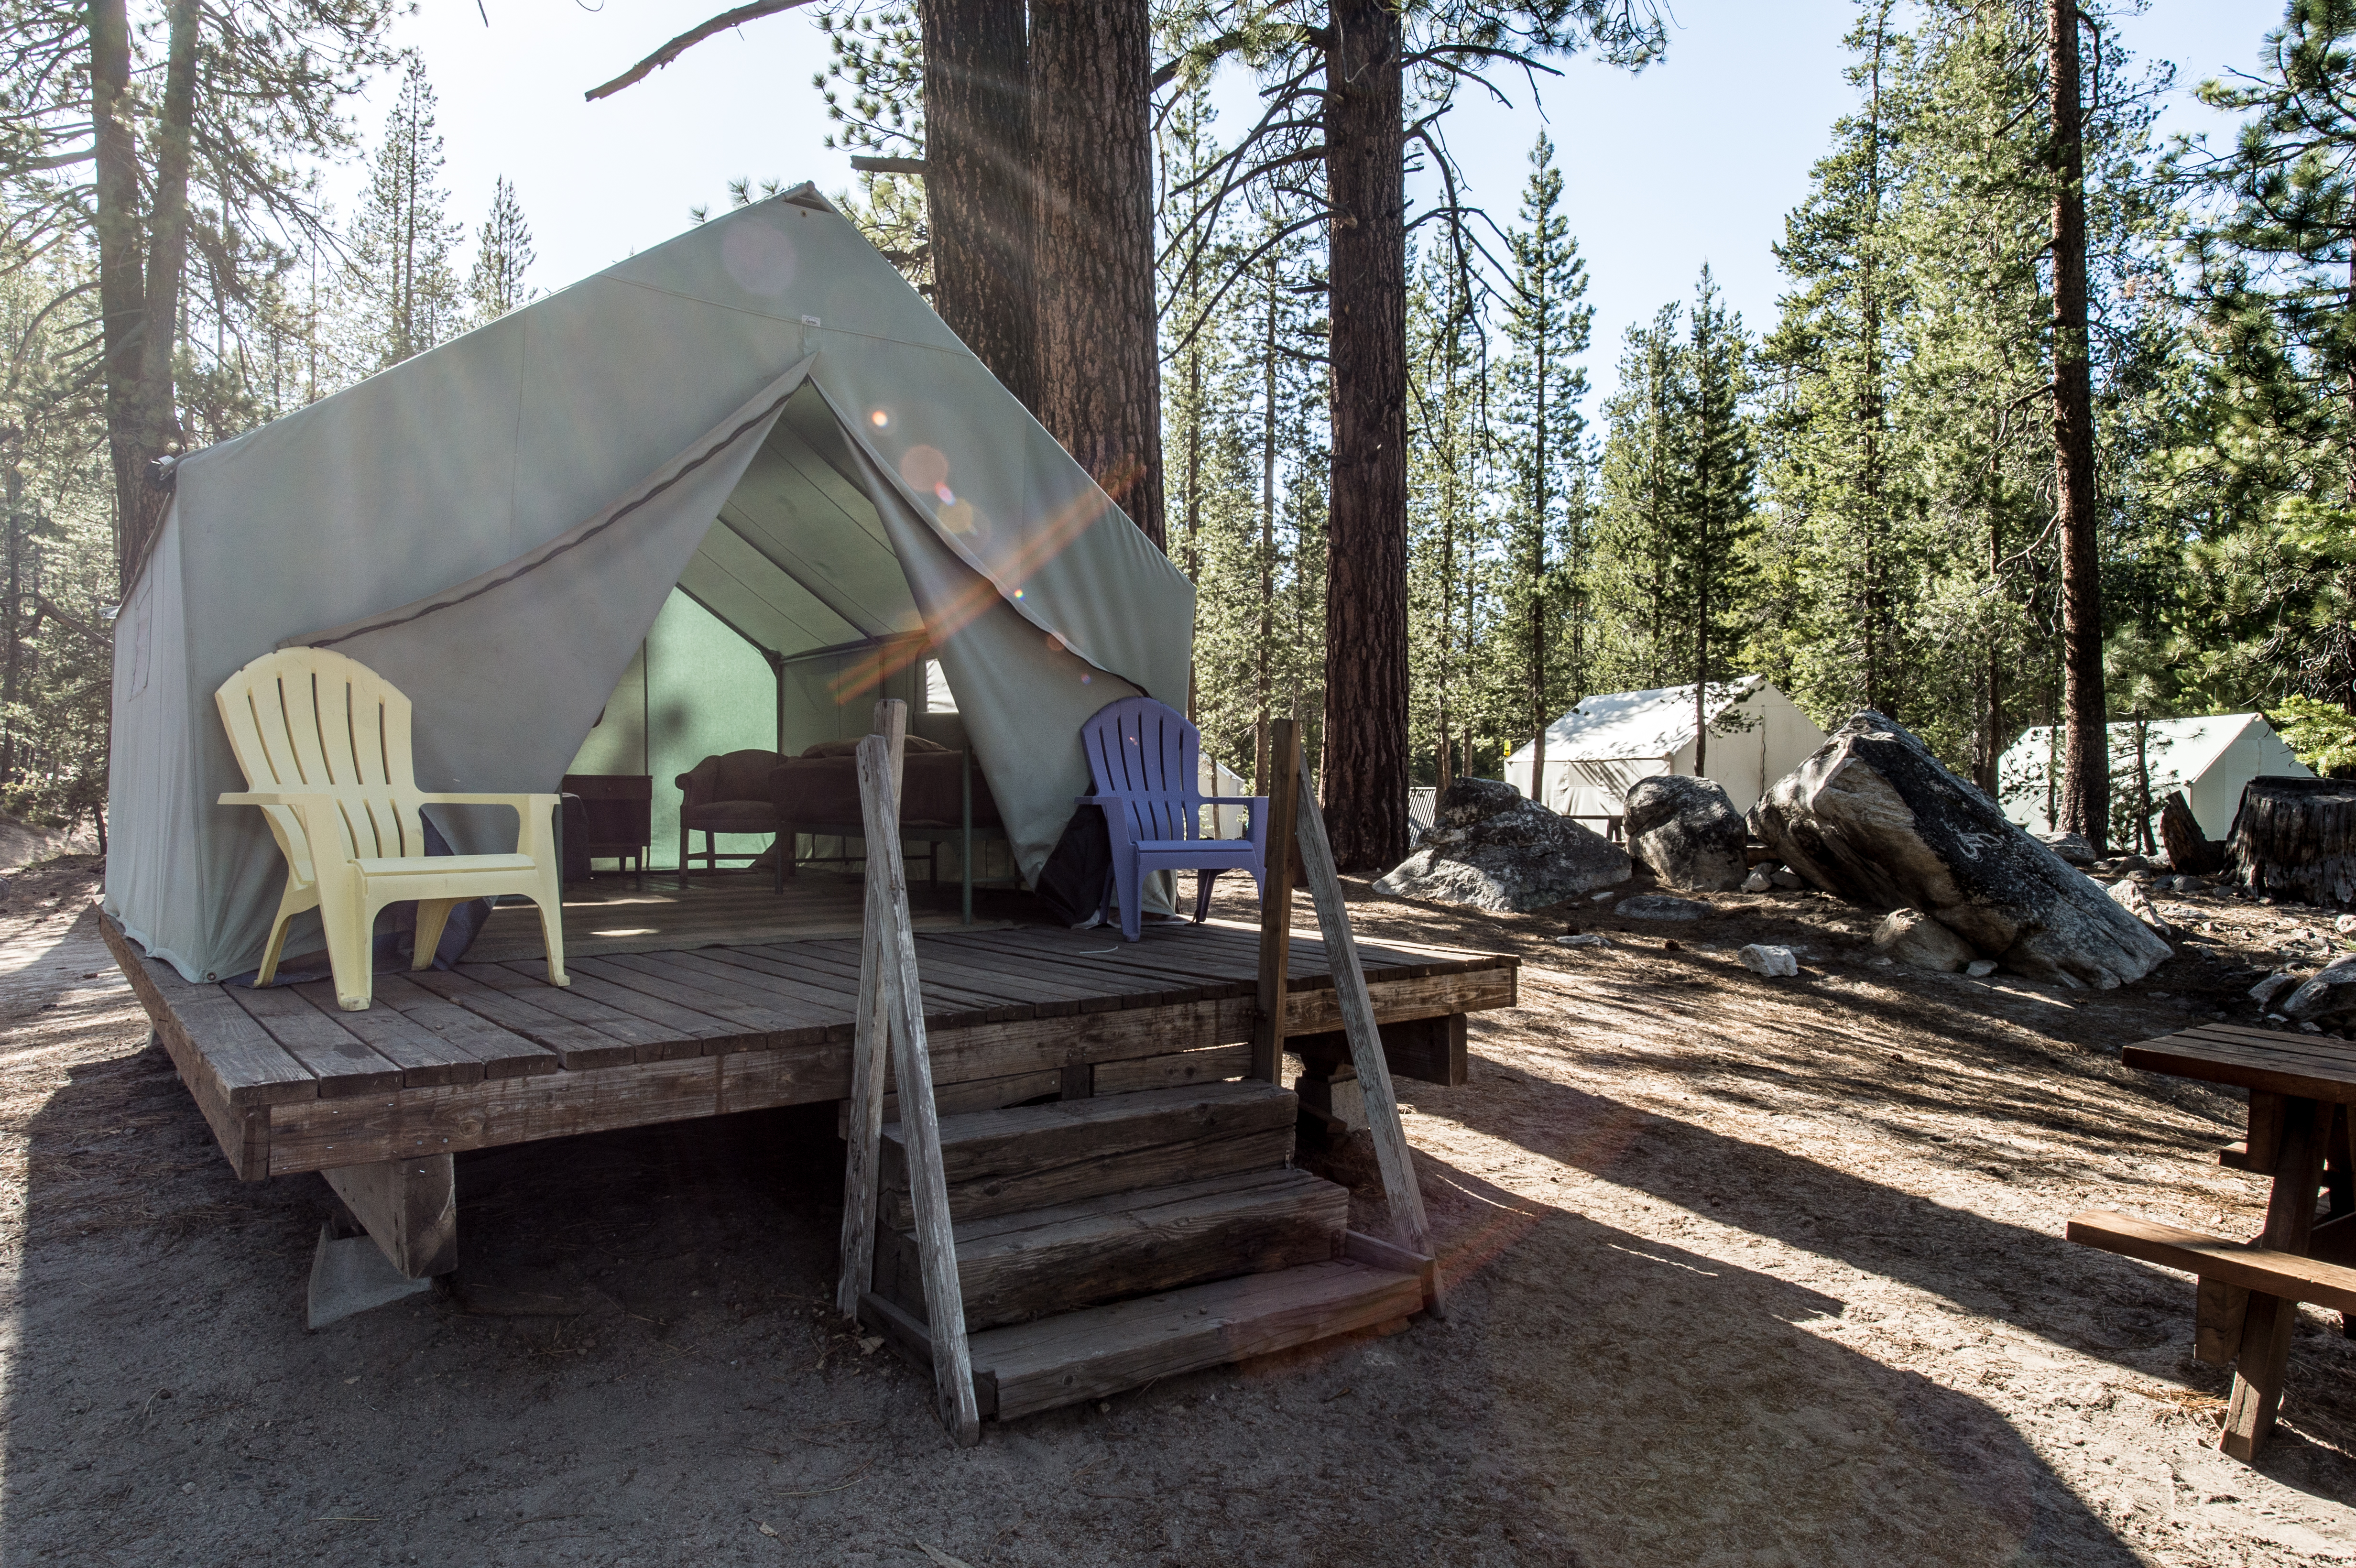 canyon of talentneeds sequoia pictures new park cabins kings national in